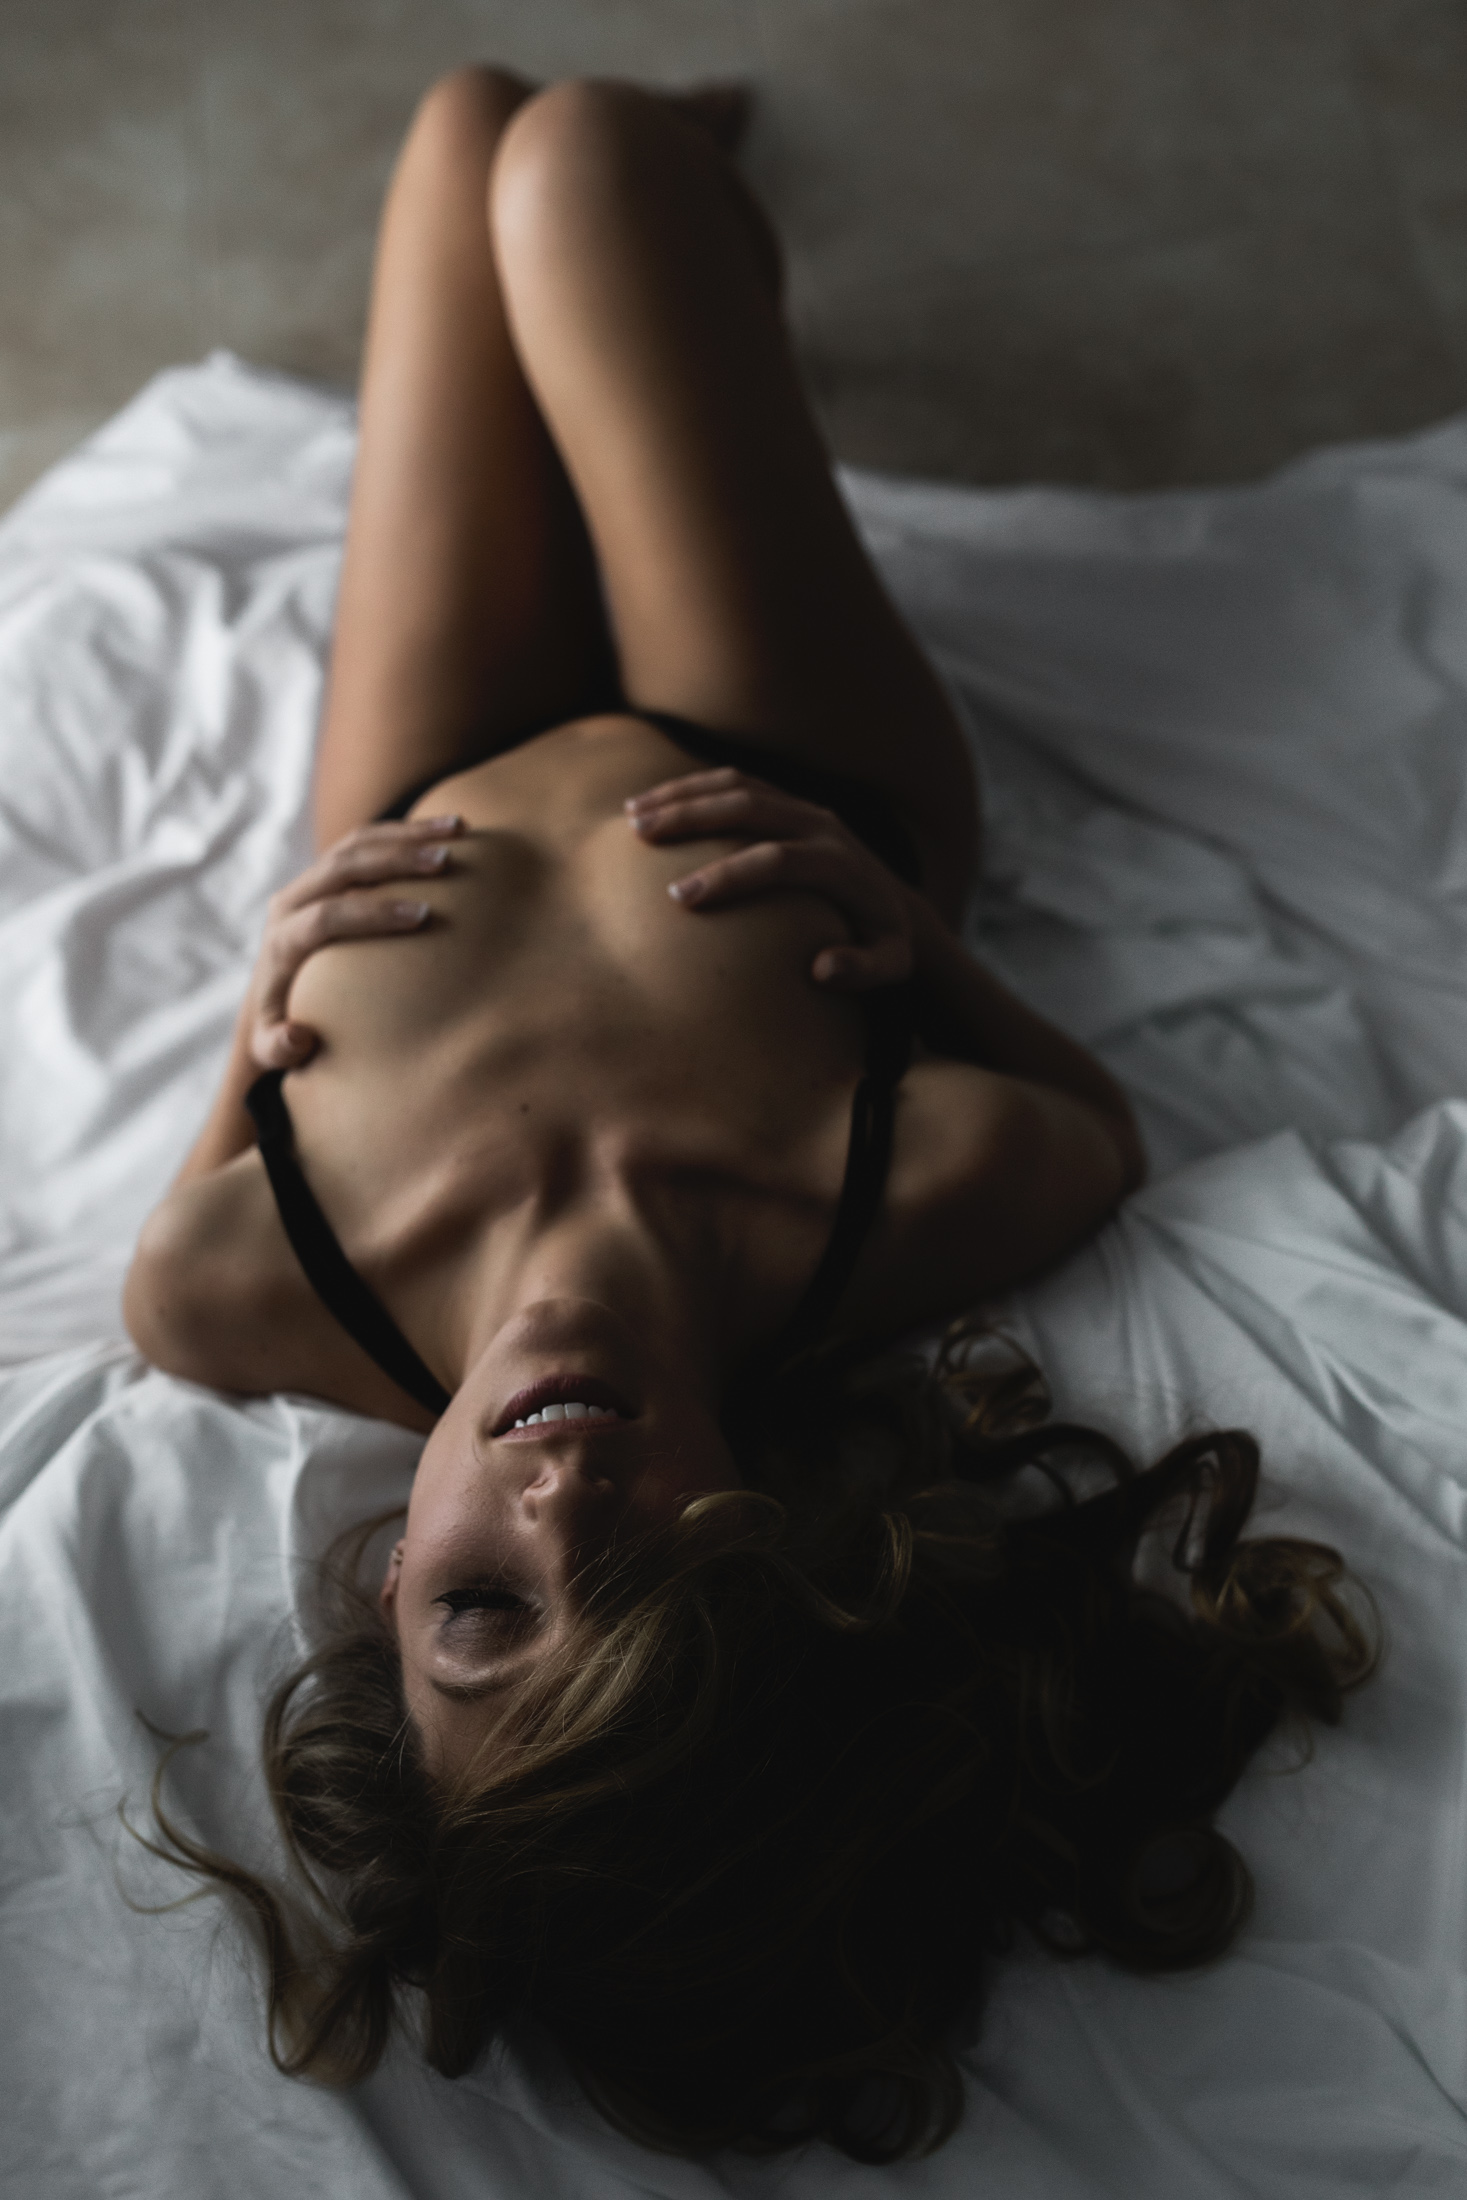 kate_juliet_photography_boudoir_web-141.jpg